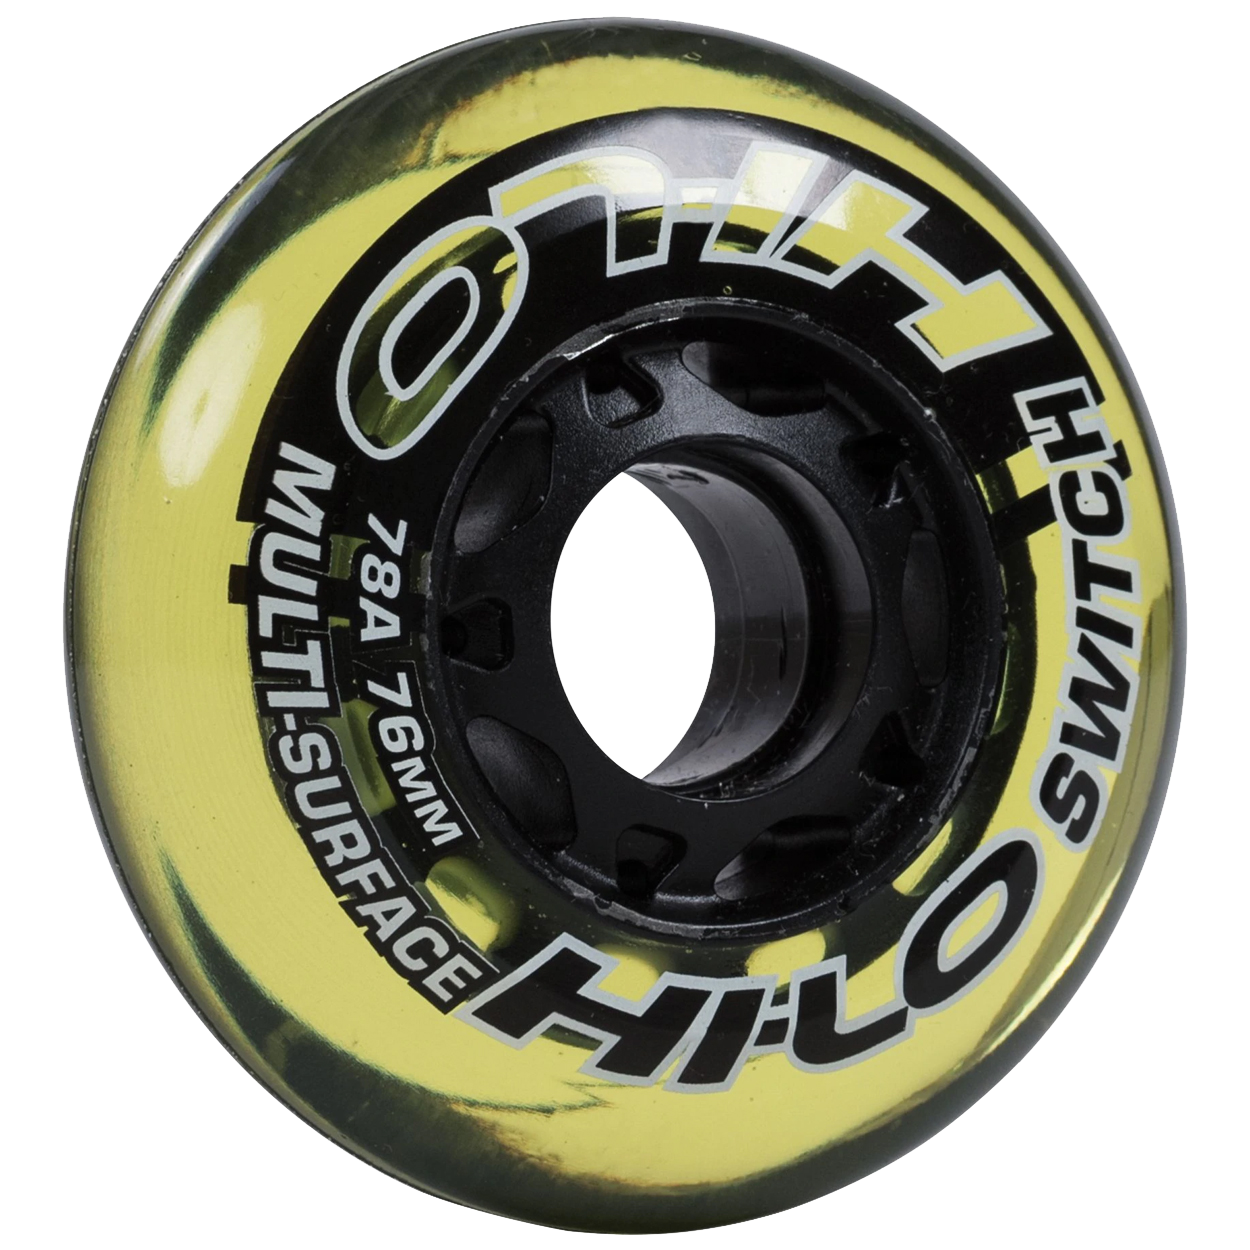 HI-LO SWITCH ROLLER HOCKEY WHEELS 4PK S16 (INDOOR / OUTDOOR),,Medium